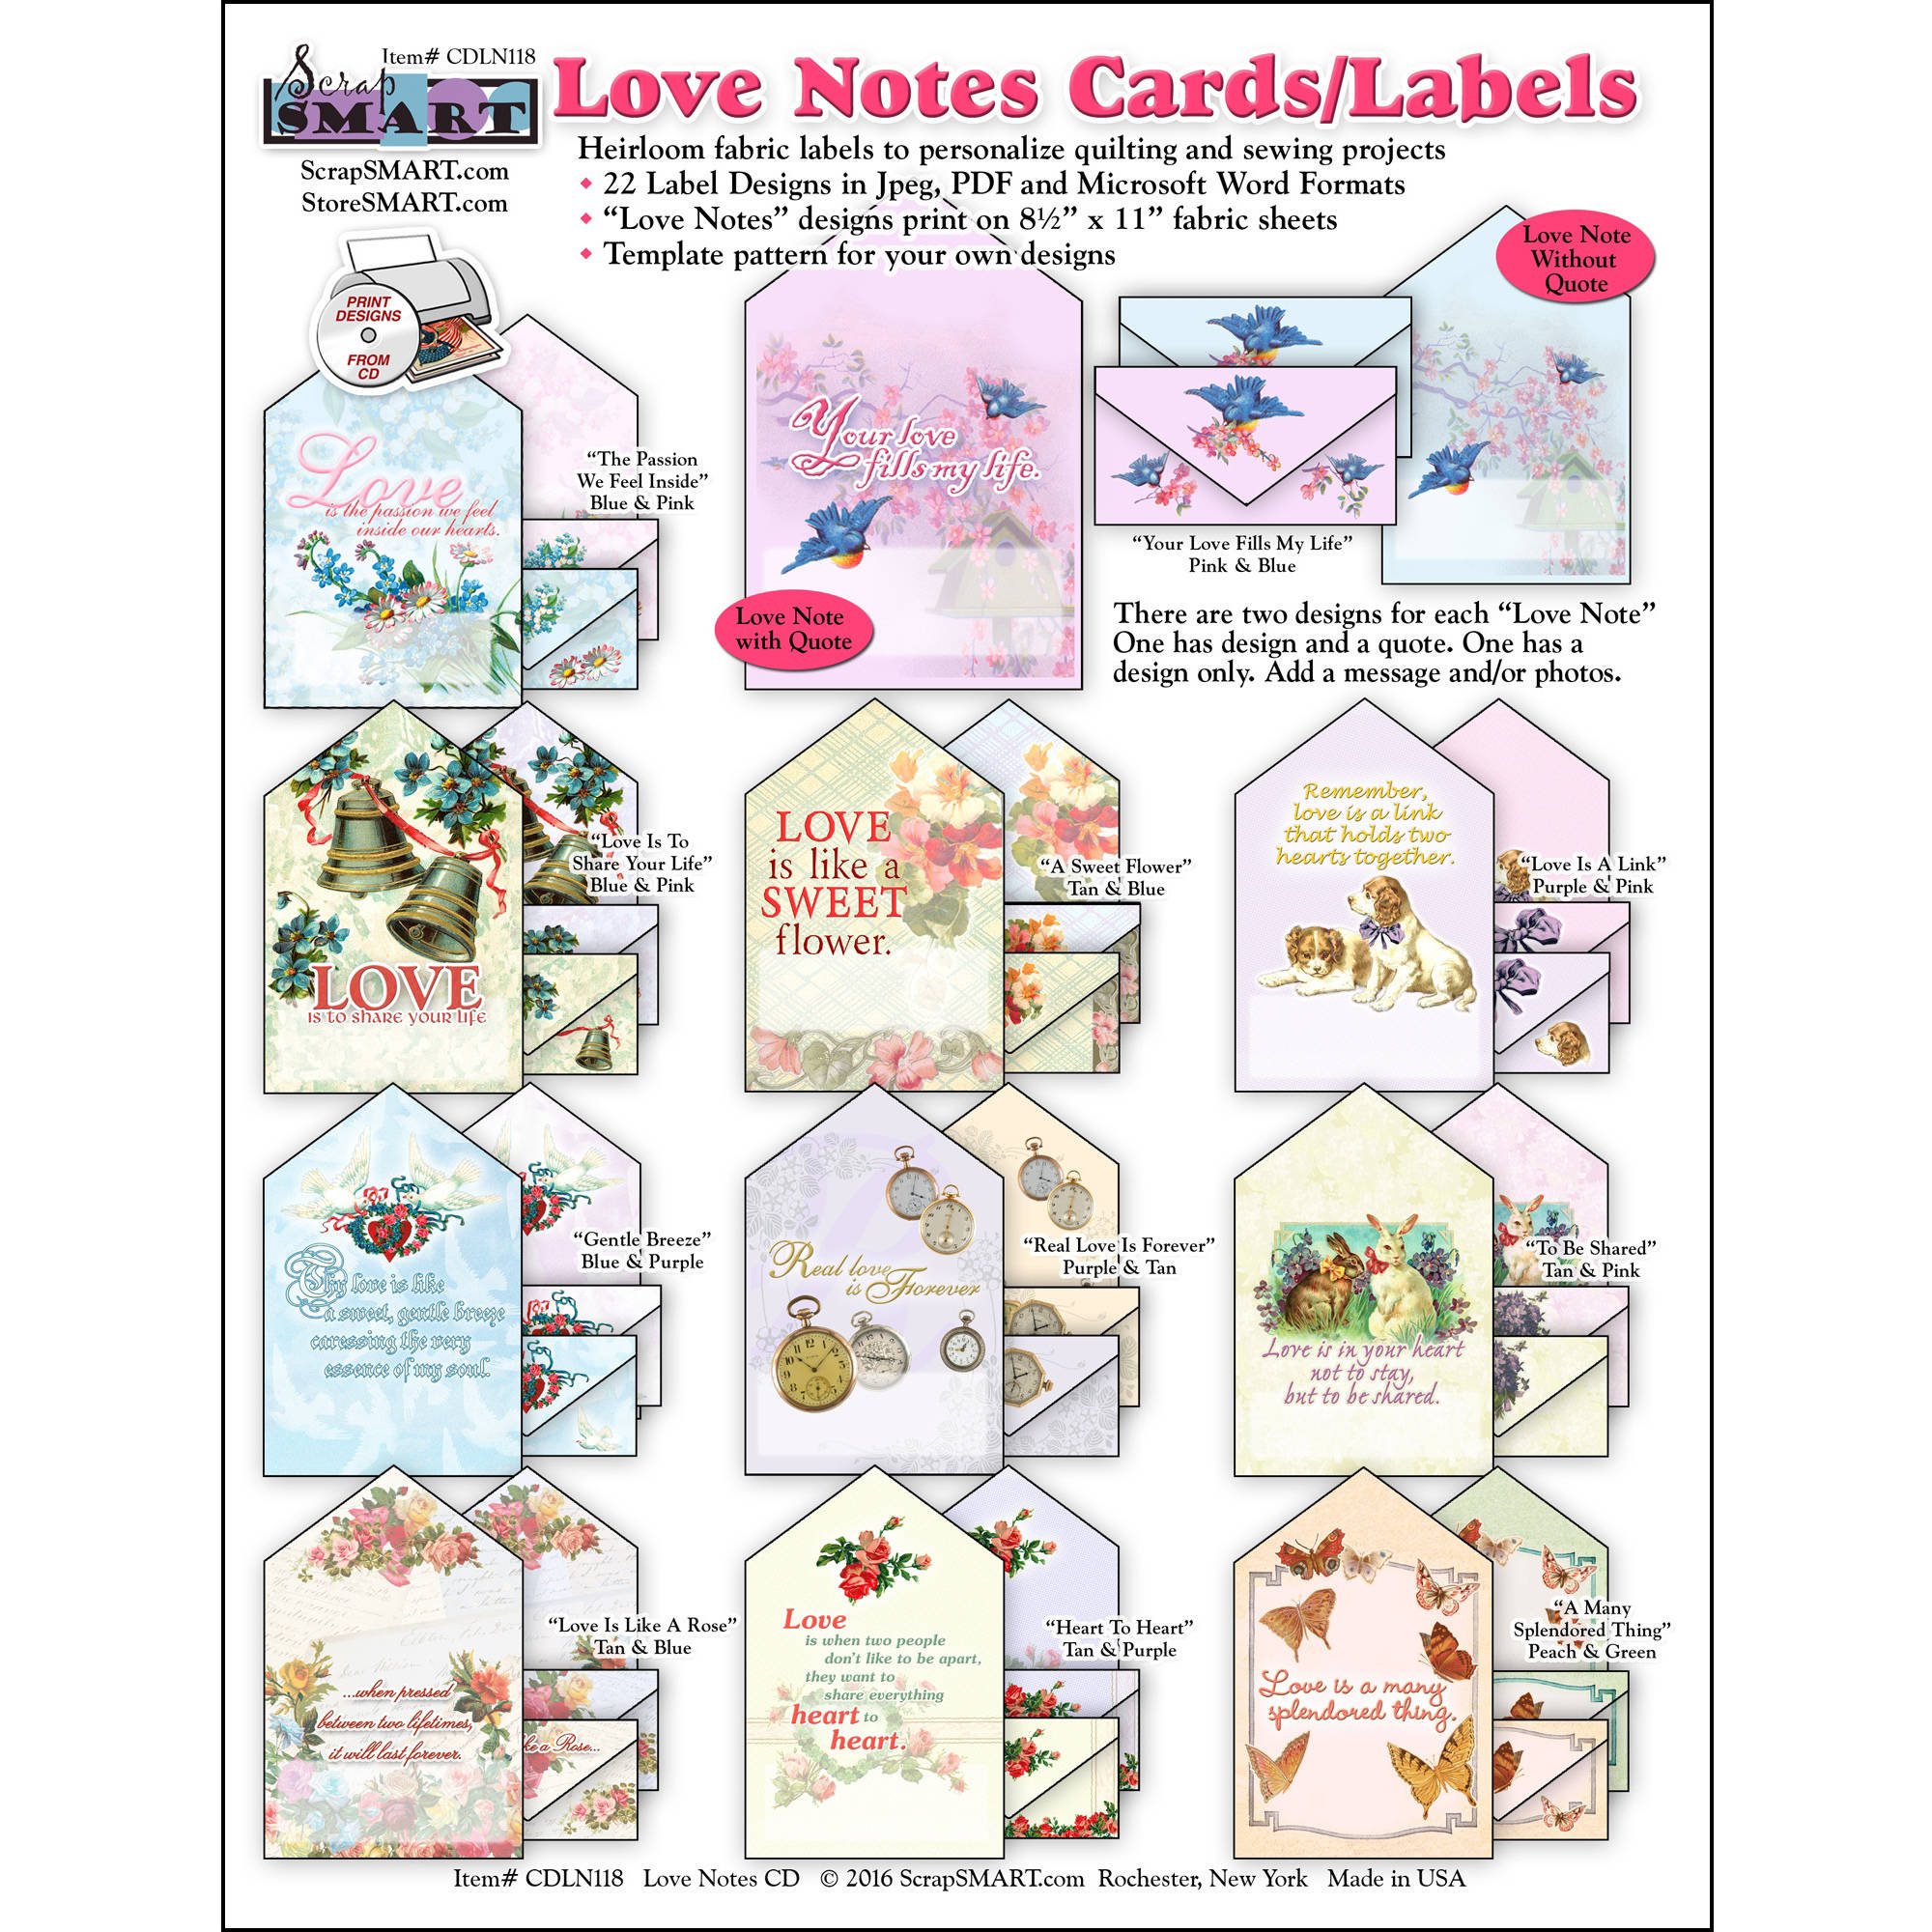 ScrapSMART Love Notes Fabric Labels CD-ROM: Label Designs, Patterns and Instructions